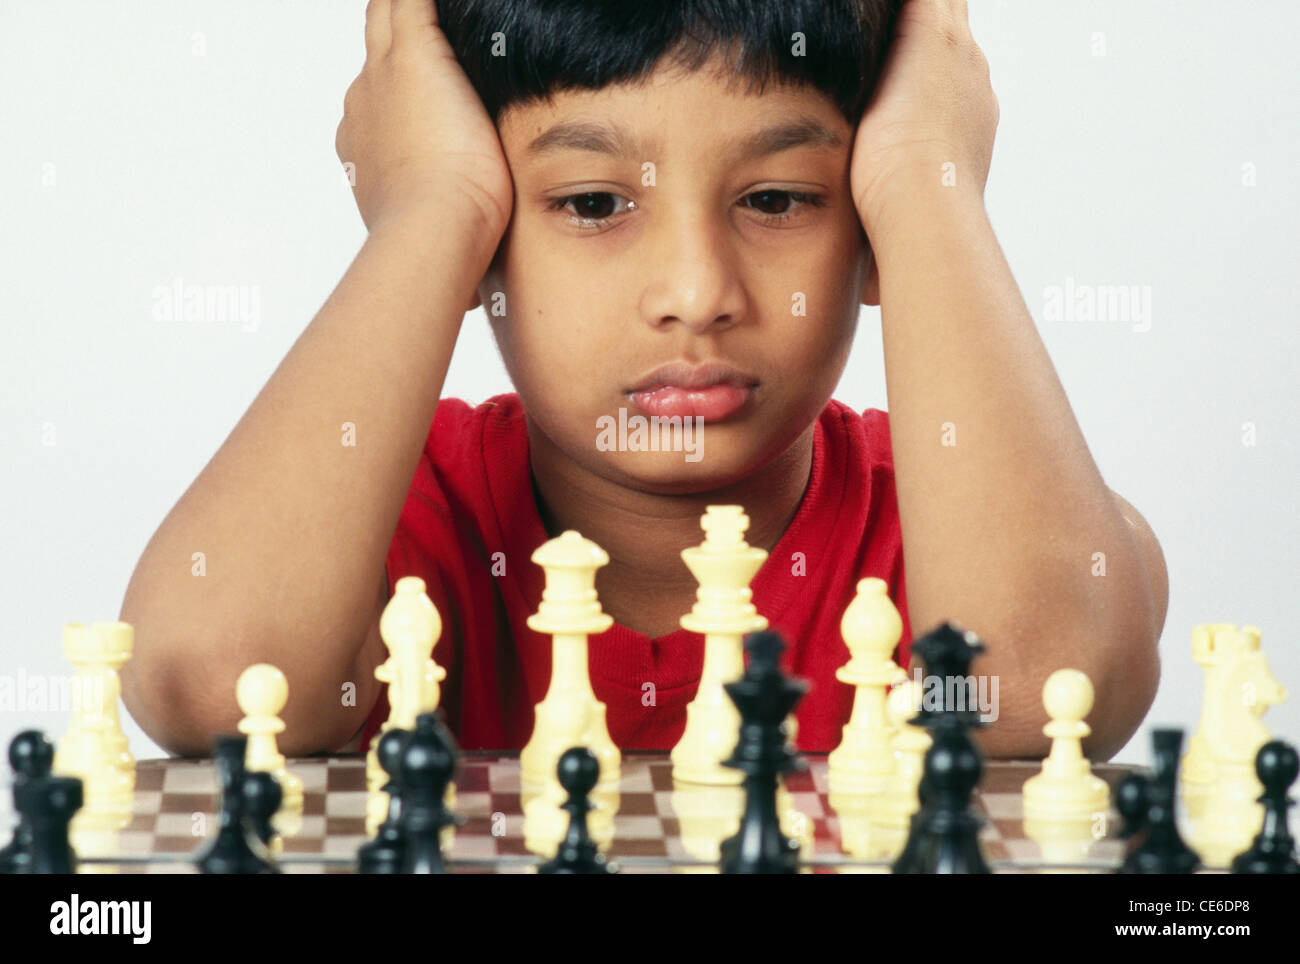 small young boy playing chess   MR#152 Stock Photo